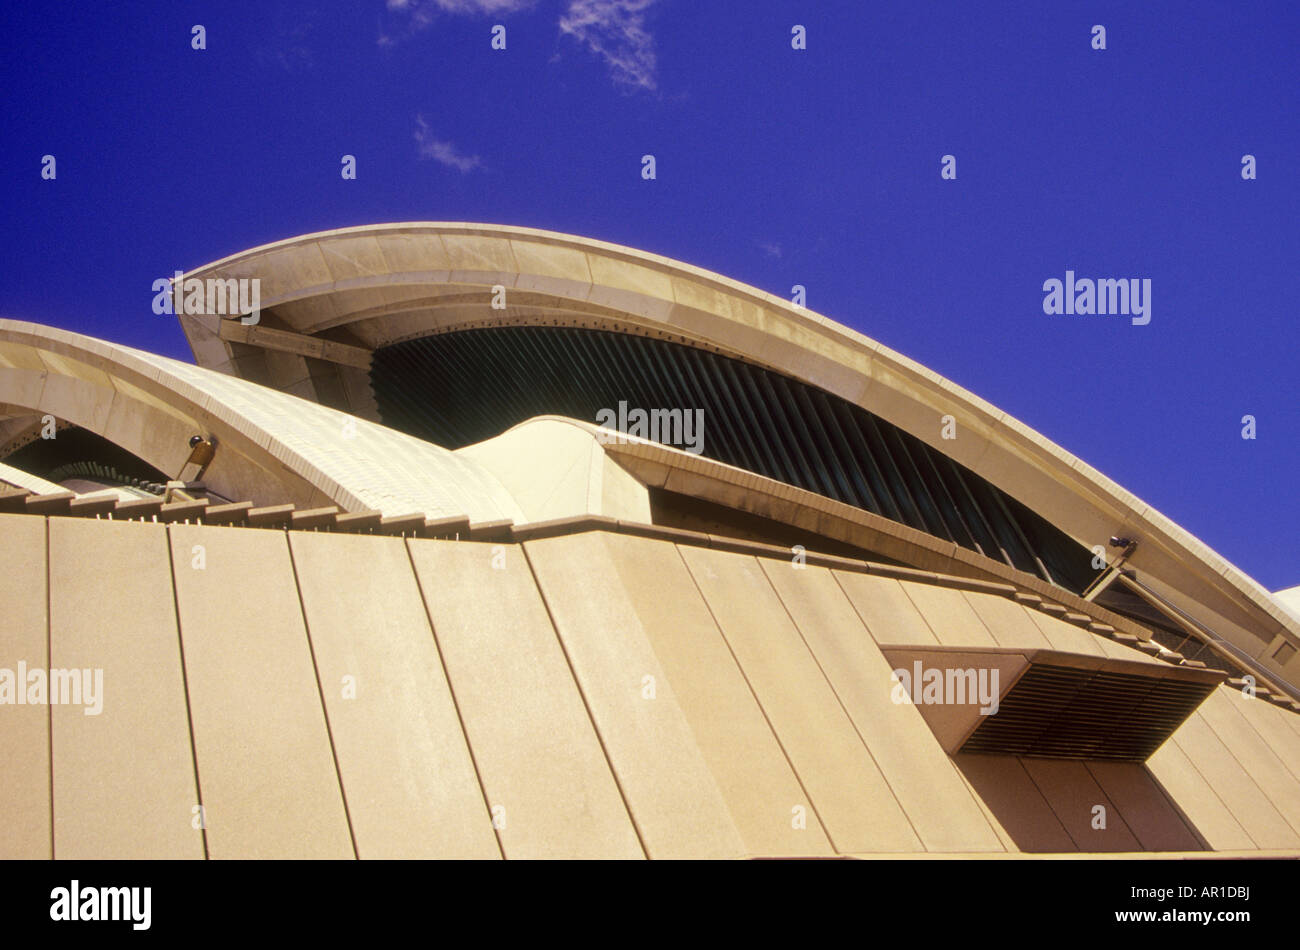 An abstract view of the roof of the Sydney Opera House, which was designed by Jørn Utzon and is a World Heritage - Stock Image